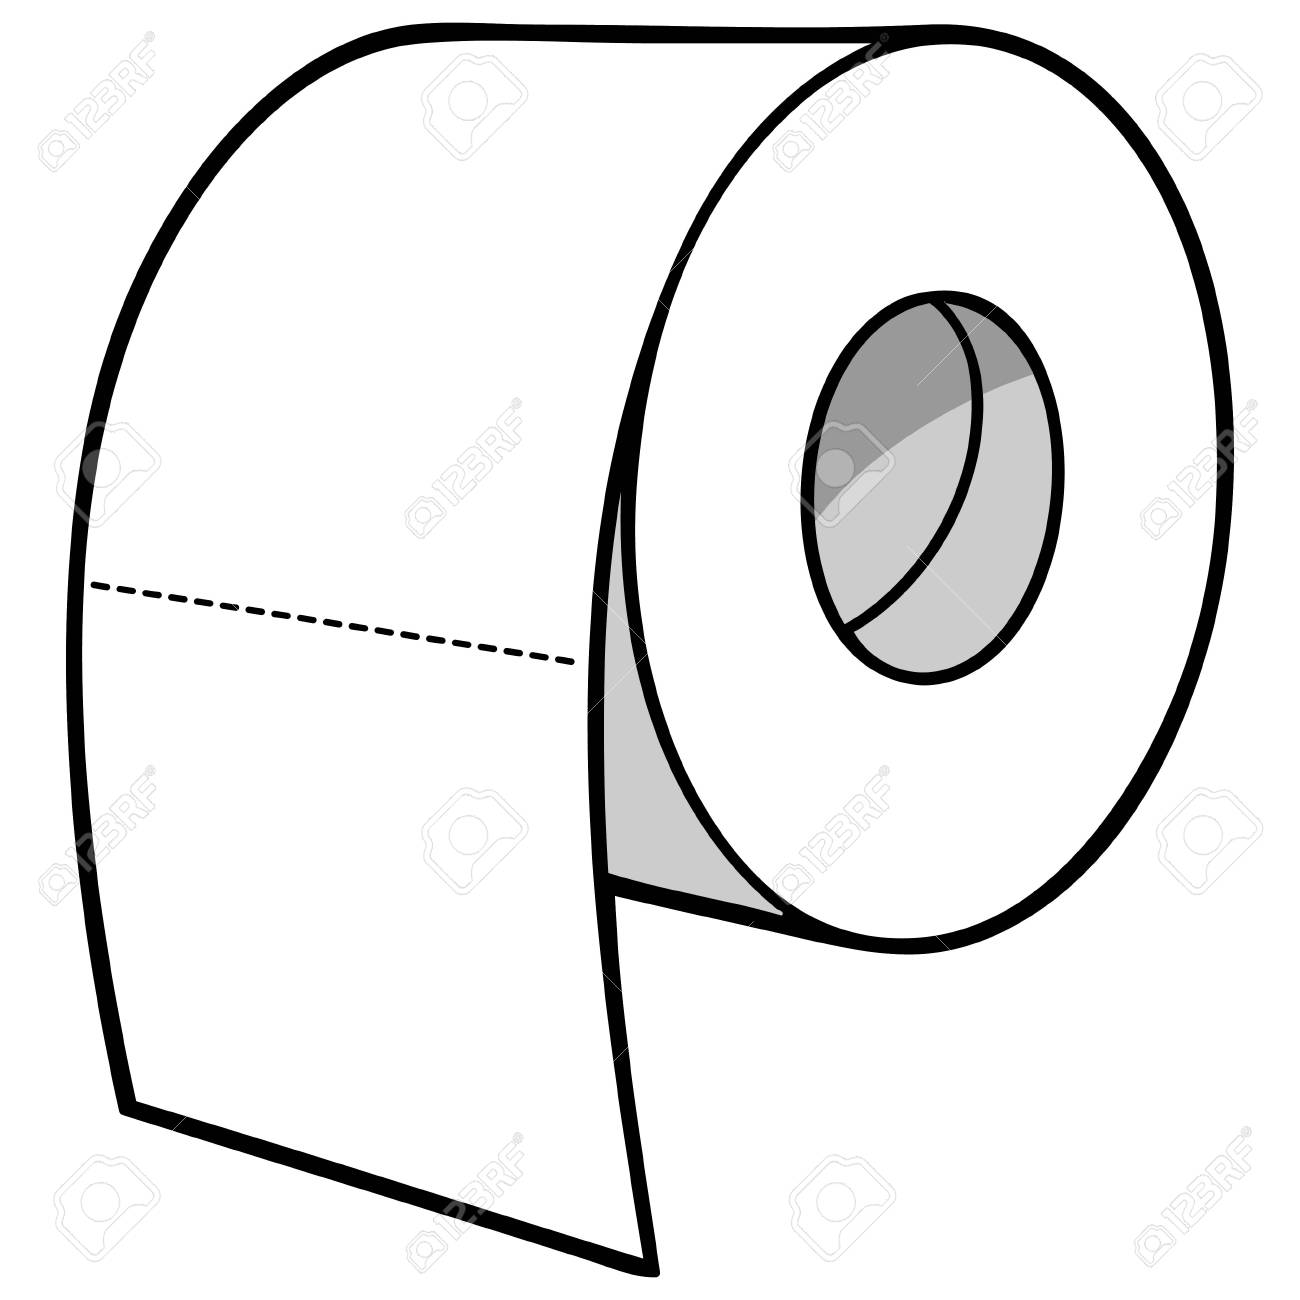 toilet paper illustration royalty free cliparts vectors and stock rh 123rf com empty toilet paper clipart toilet paper clipart